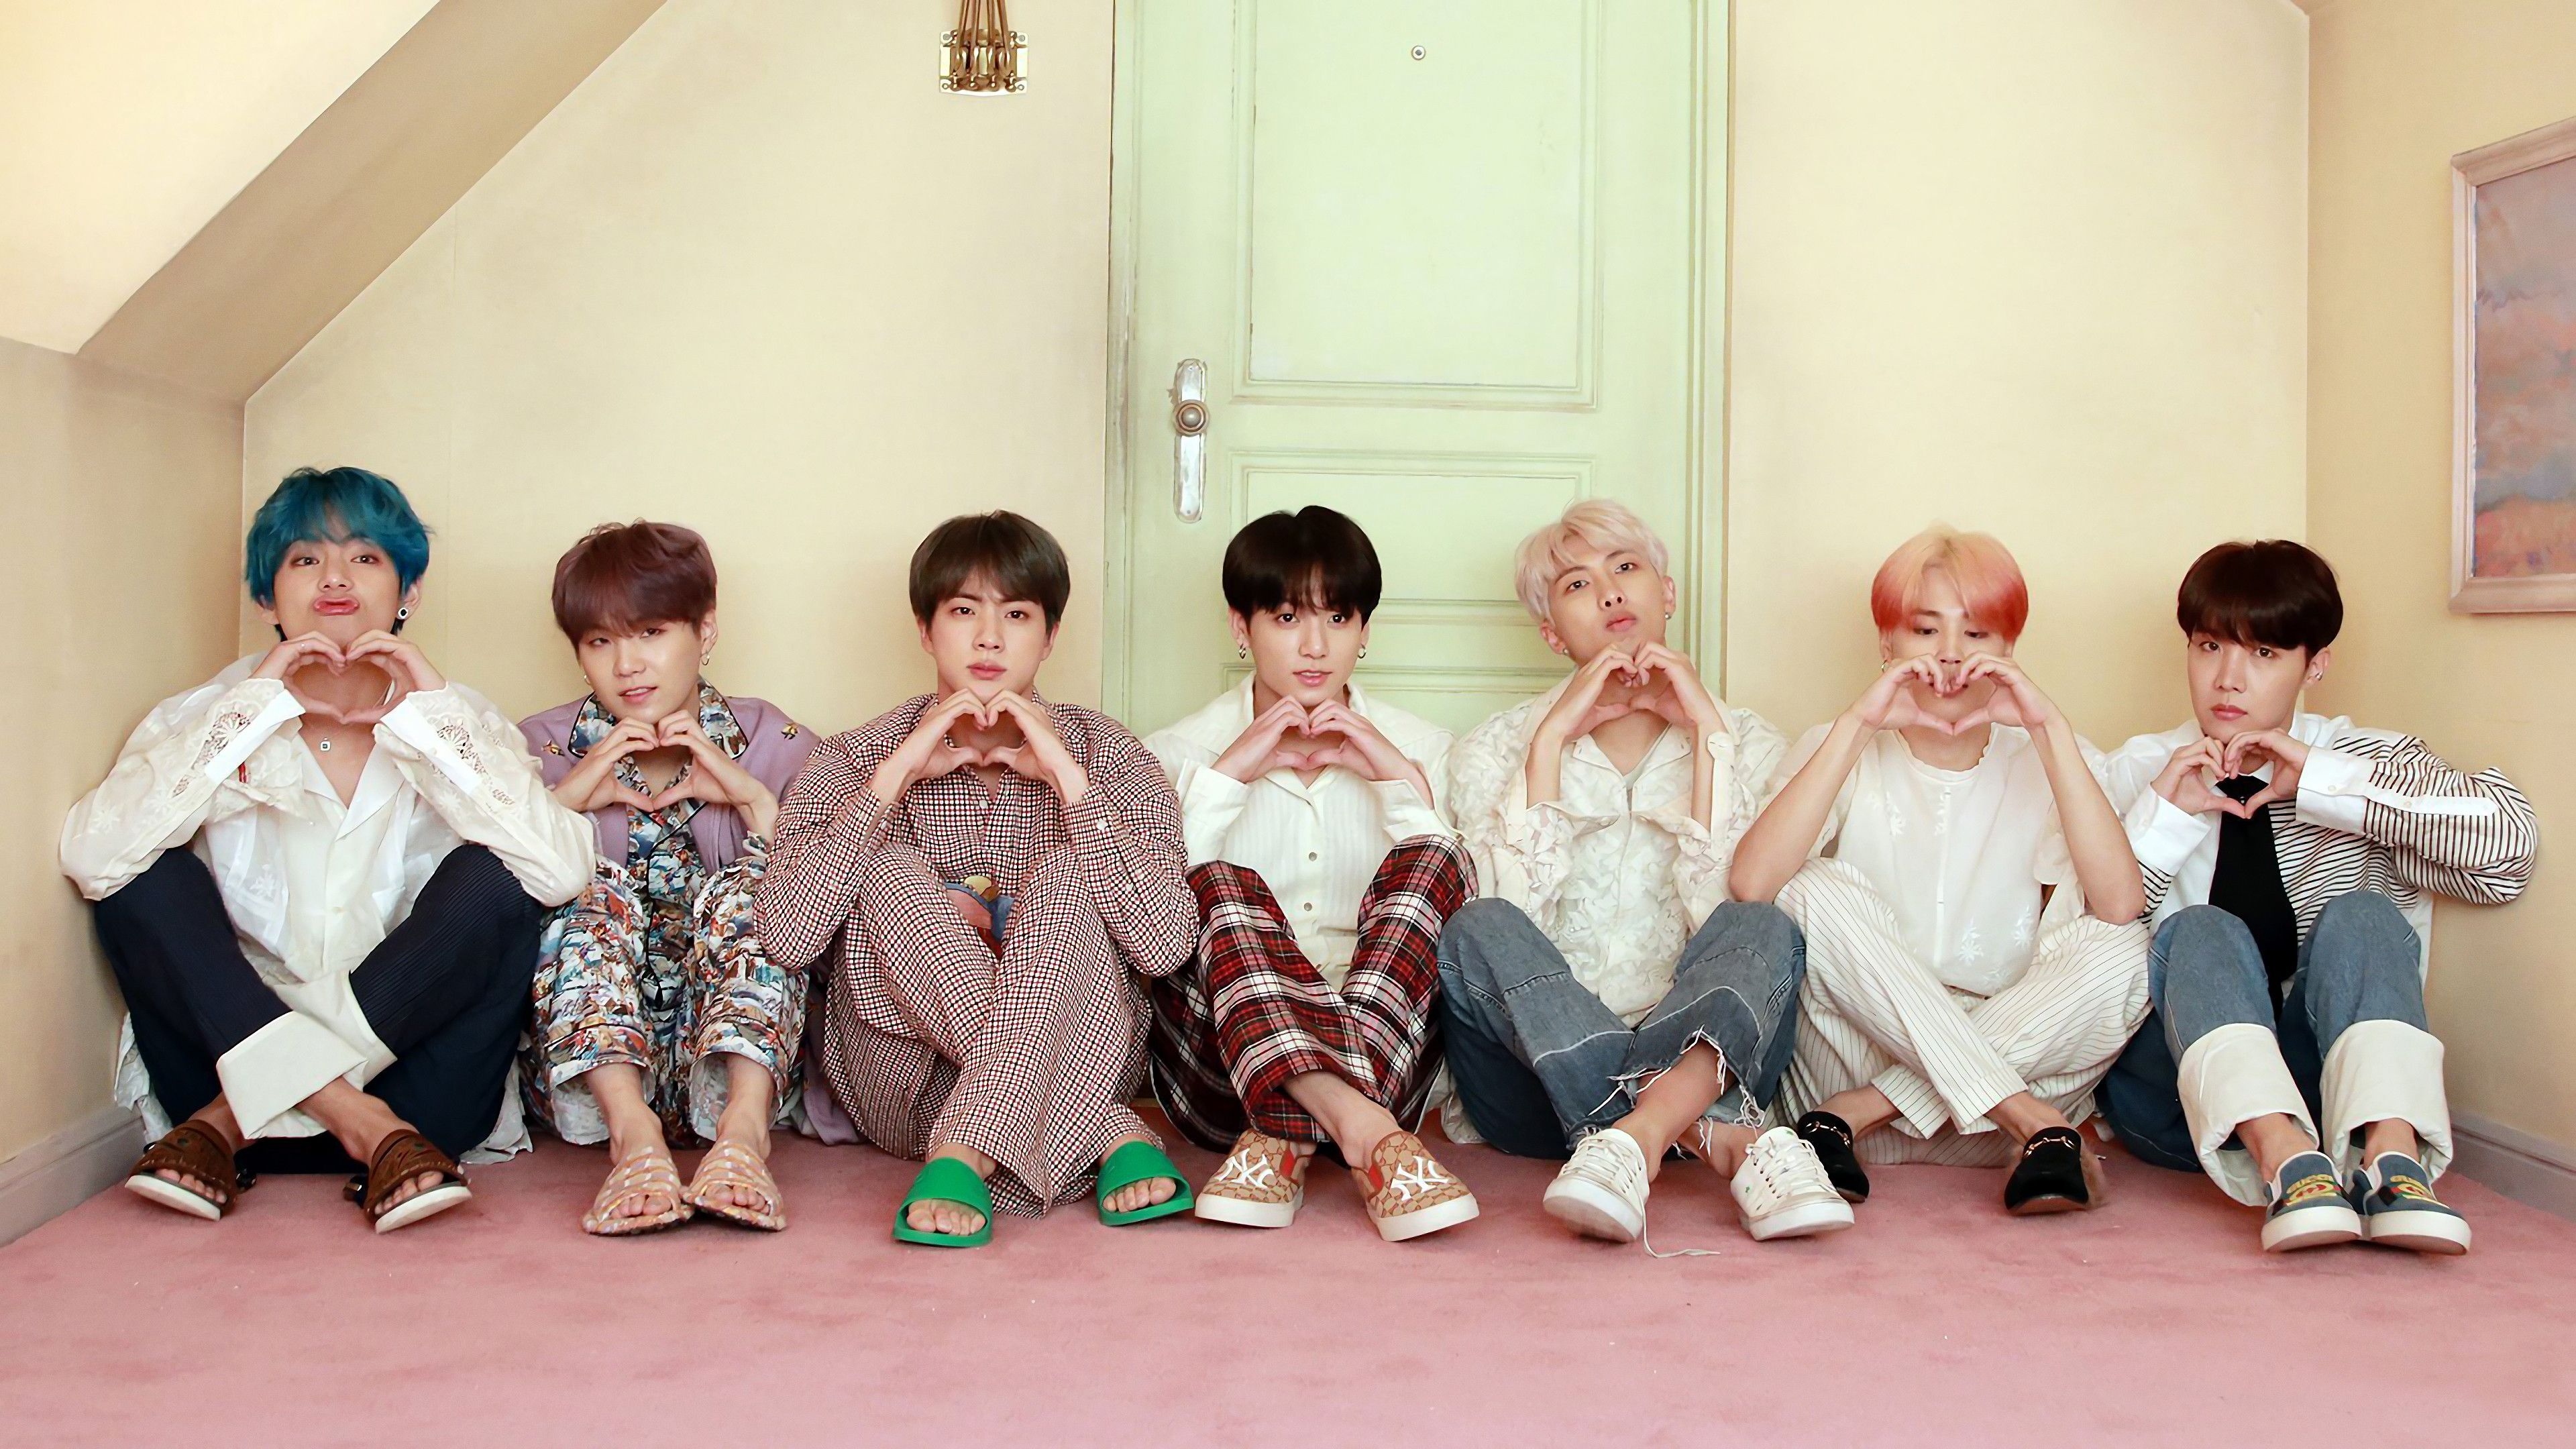 Bts Desktop 2020 Wallpapers Wallpaper Cave